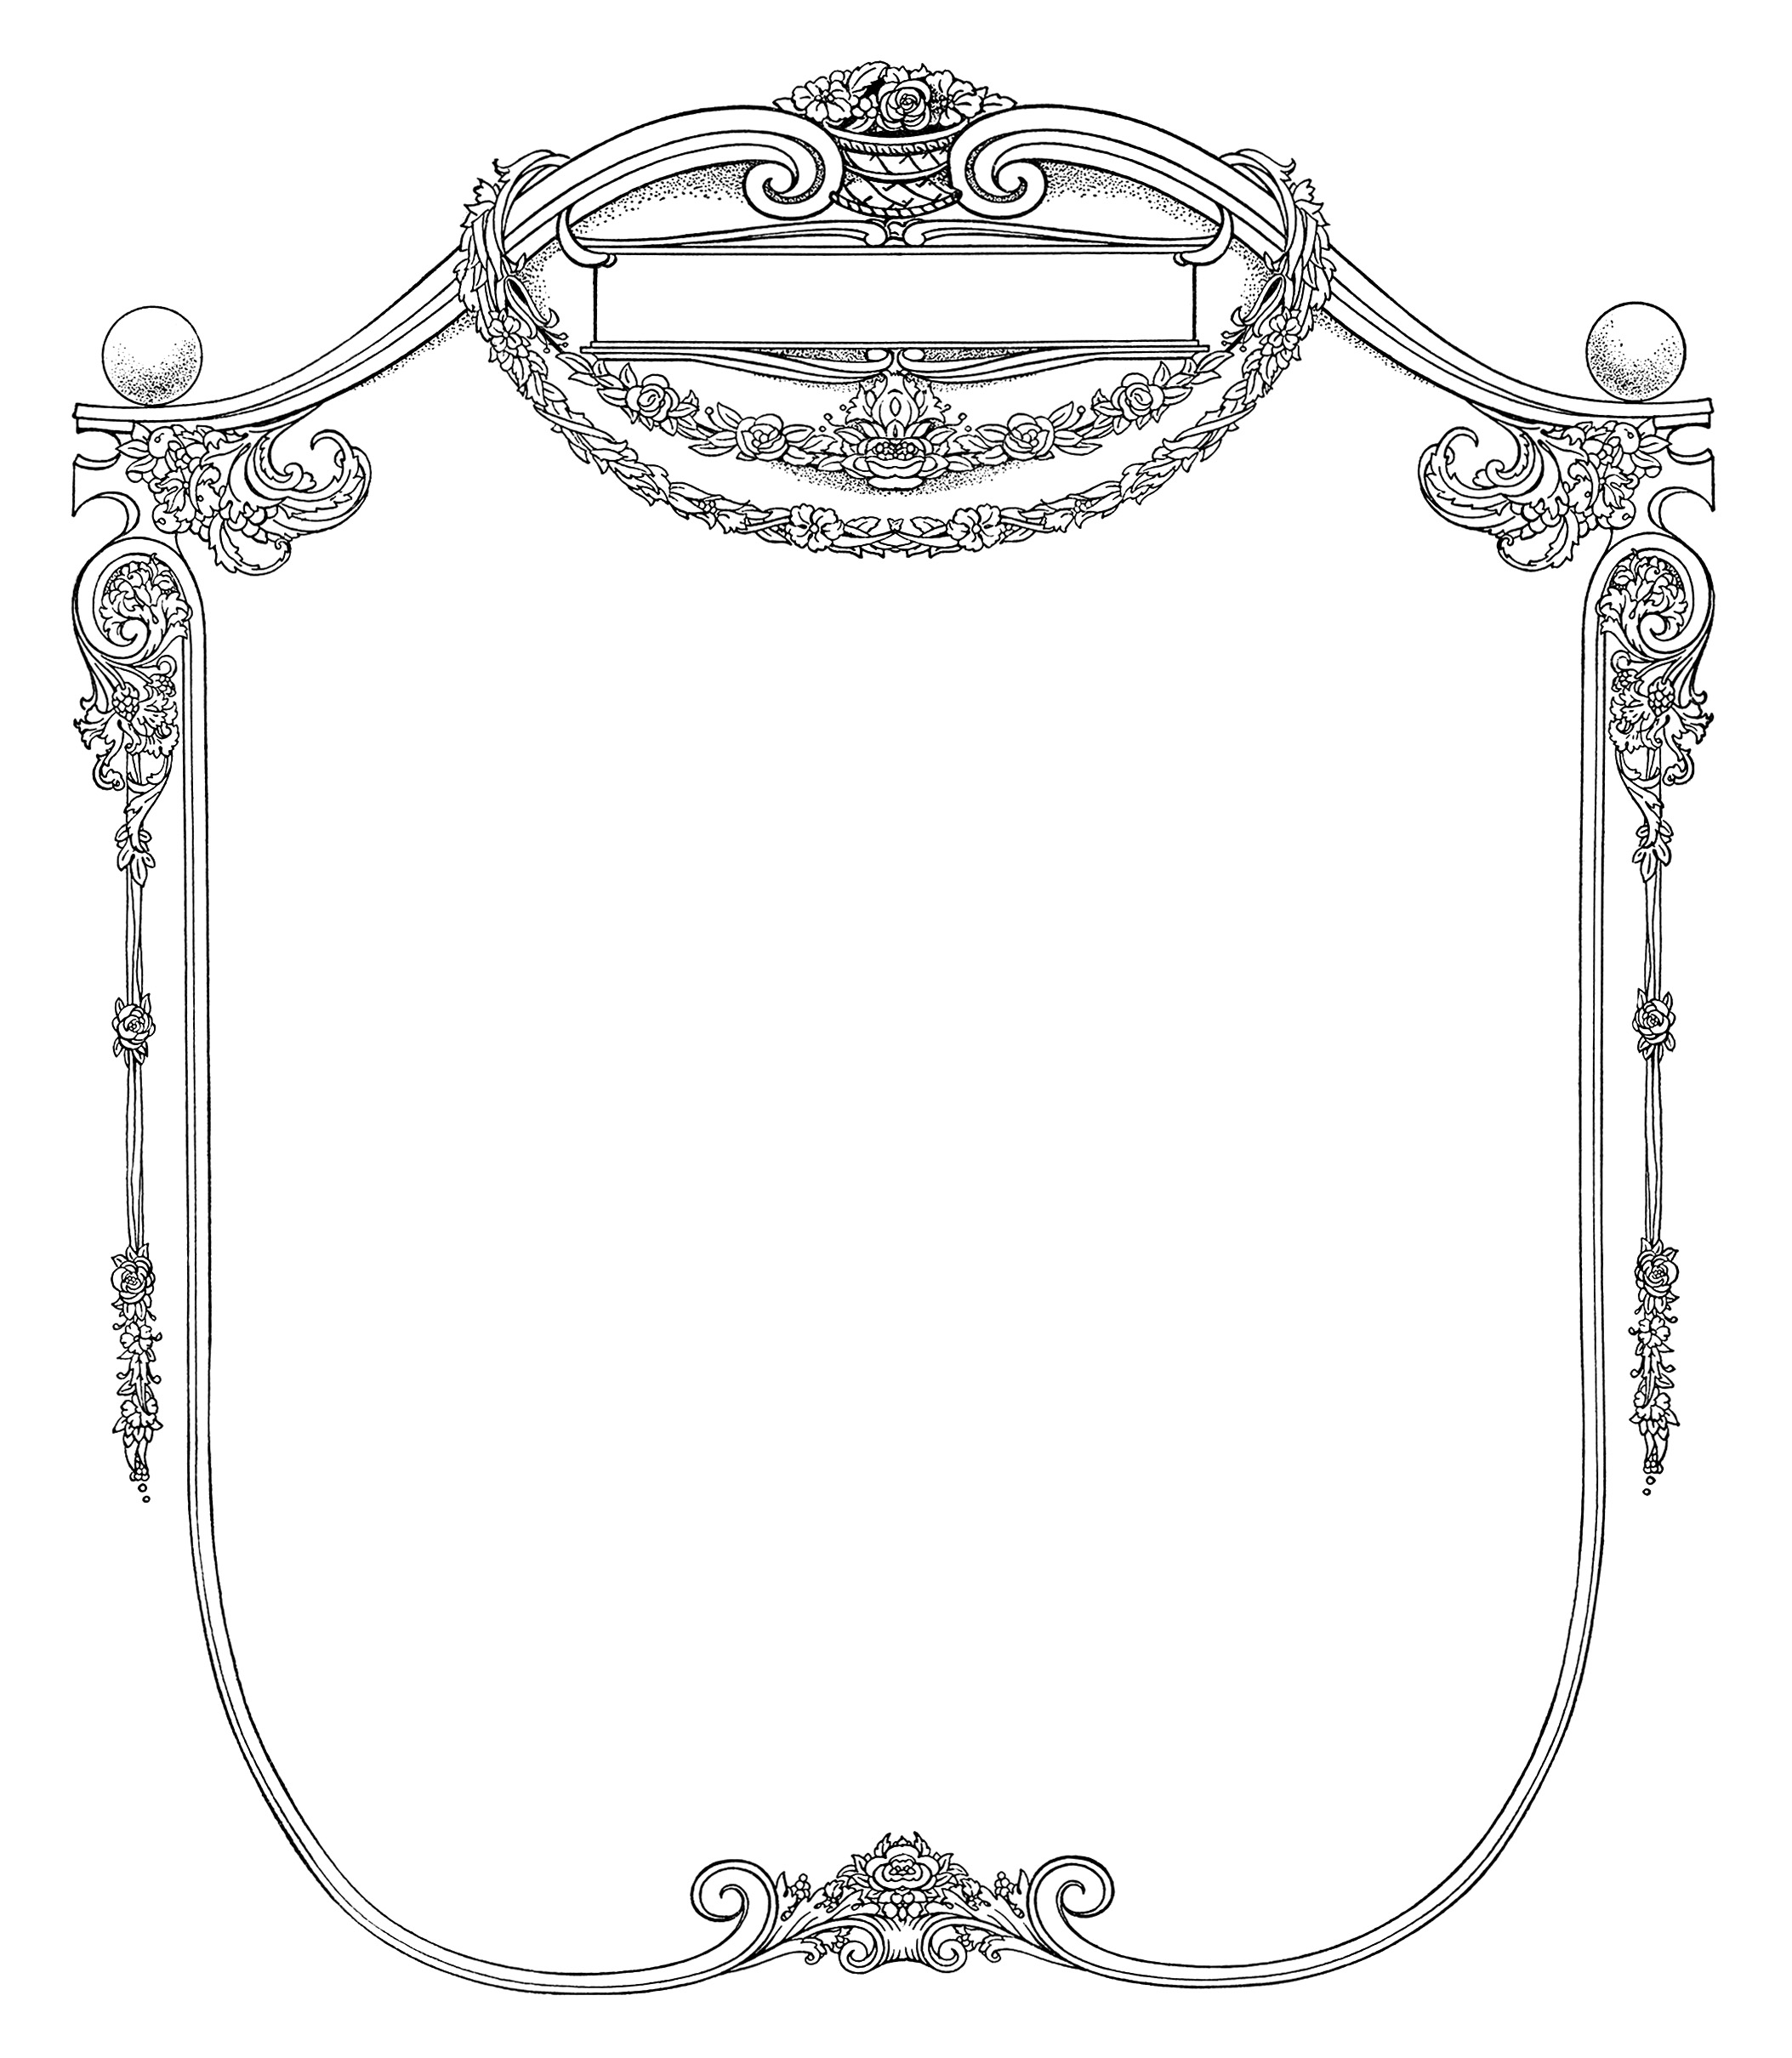 Free Grungy Page and Ornate Frame Clip Art | Old Design ...